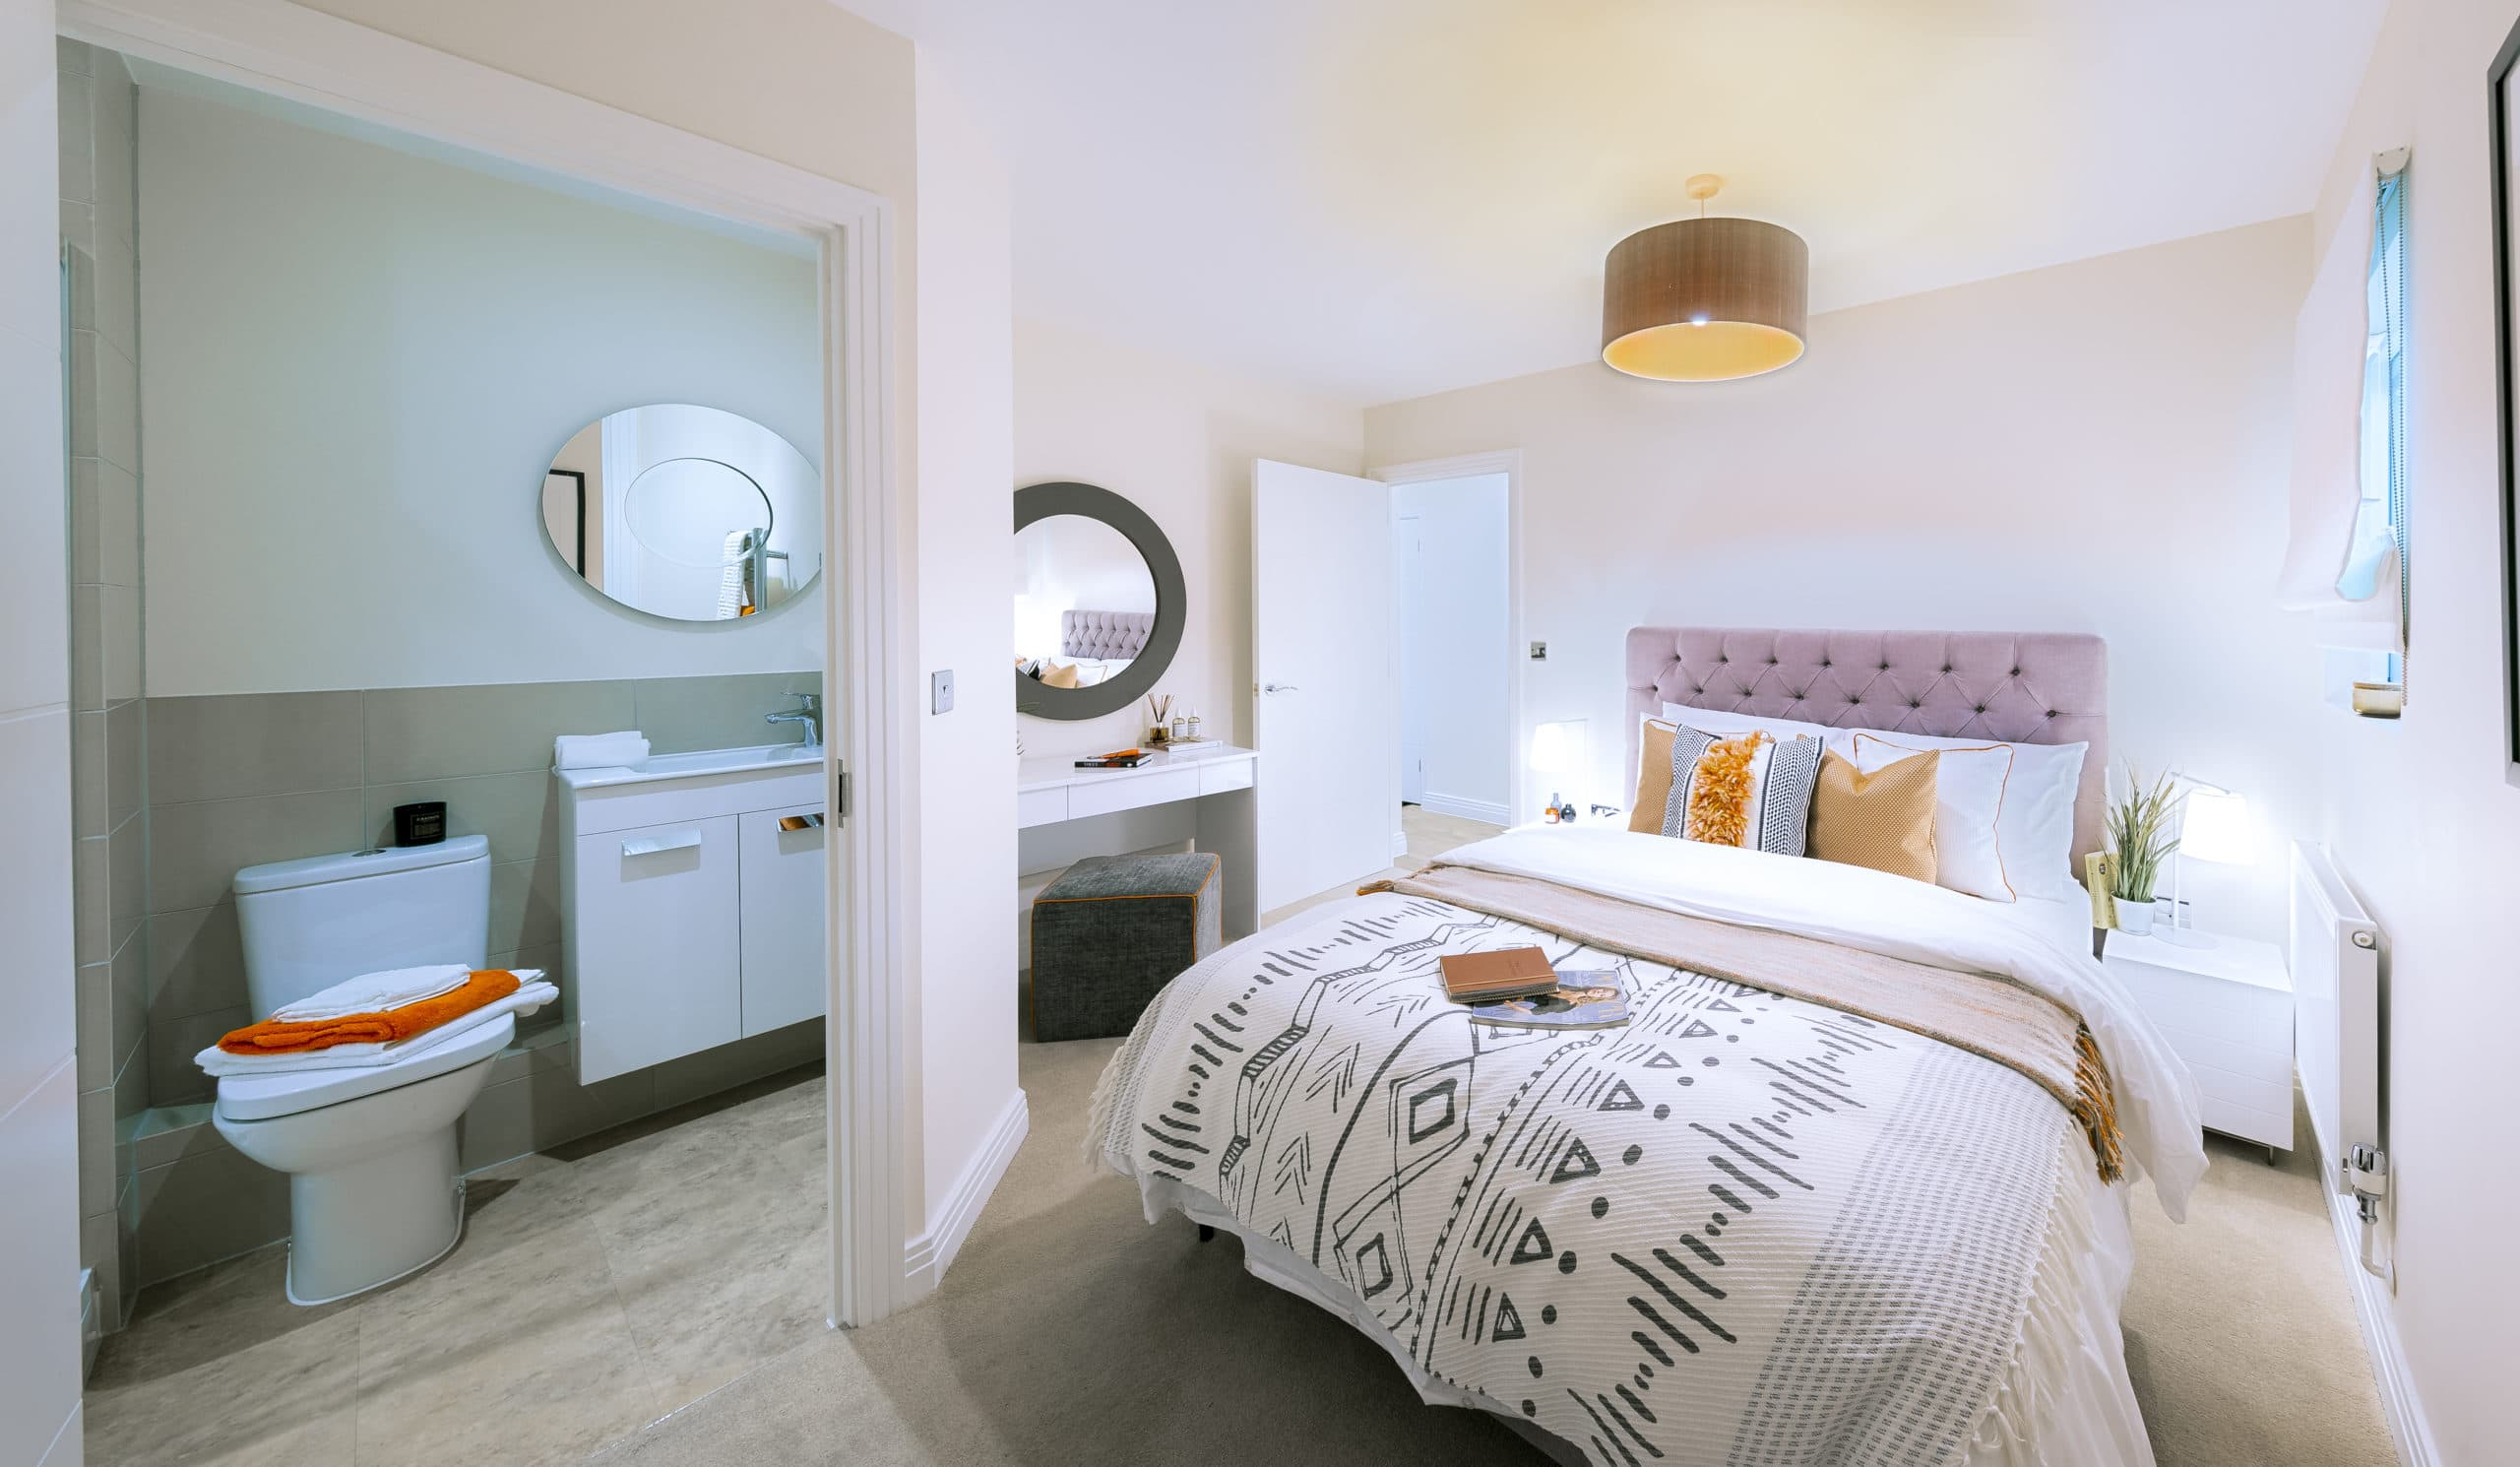 Show home photography at SO Resi Times Square - Shared Ownership homes available on Share to Buy